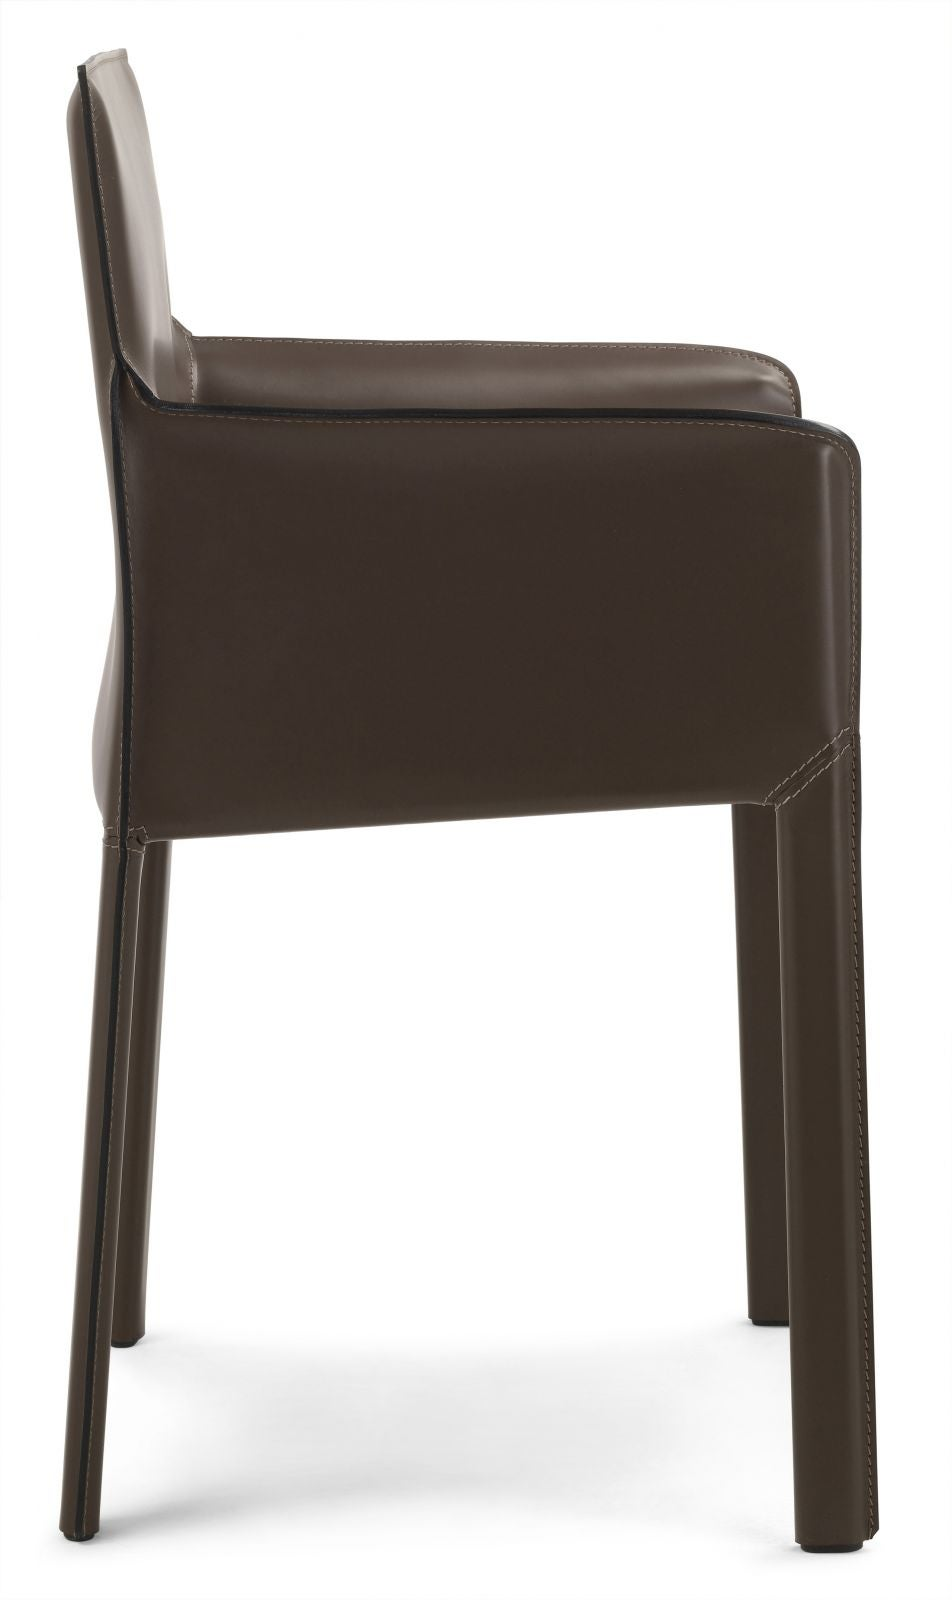 Modern Italian Dining Chair Furniture Design Made In Italy For At 1stdibs